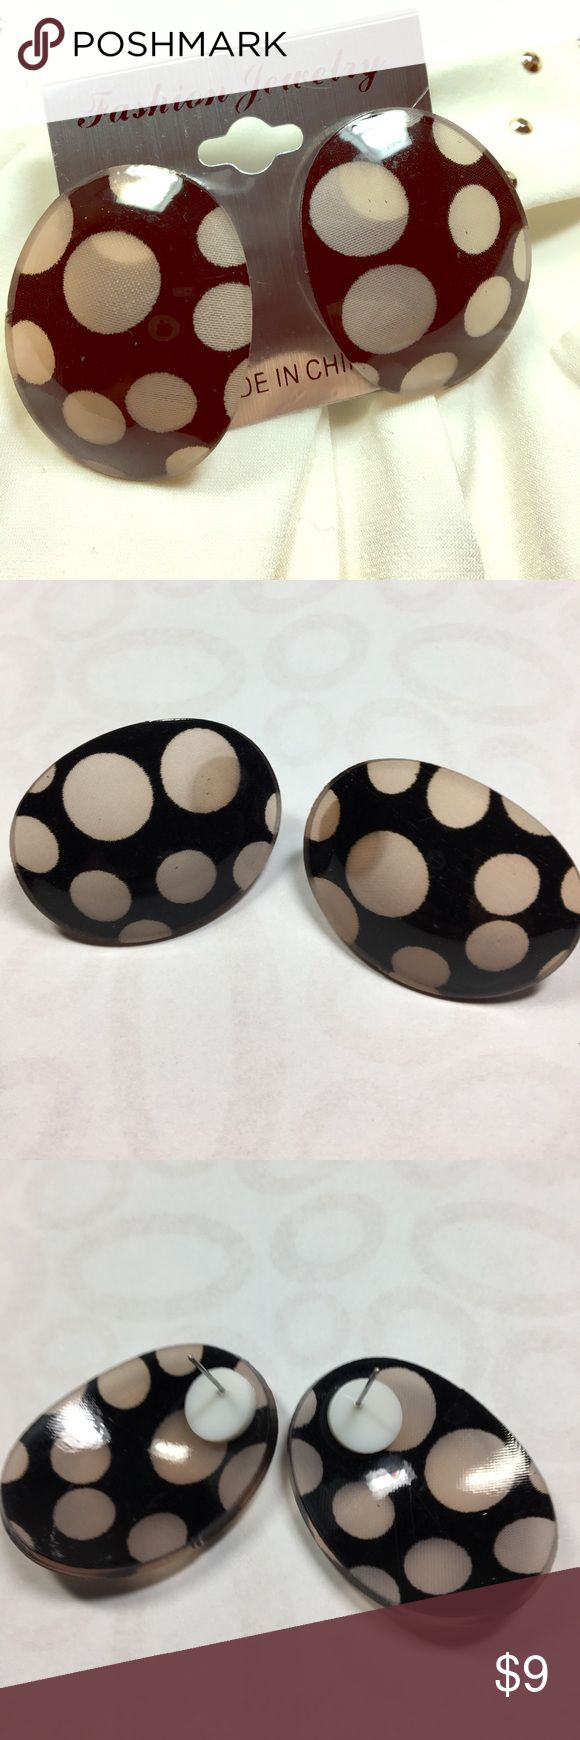 """Restocked!  White Polka Dot Earrings Adorable!  White spotted earrings made of synthetic material.  Background is slightly translucent black.  So much fun!  Approximately 1.75"""" long and 1.35 wide.  Post backs. Jewelry Earrings"""